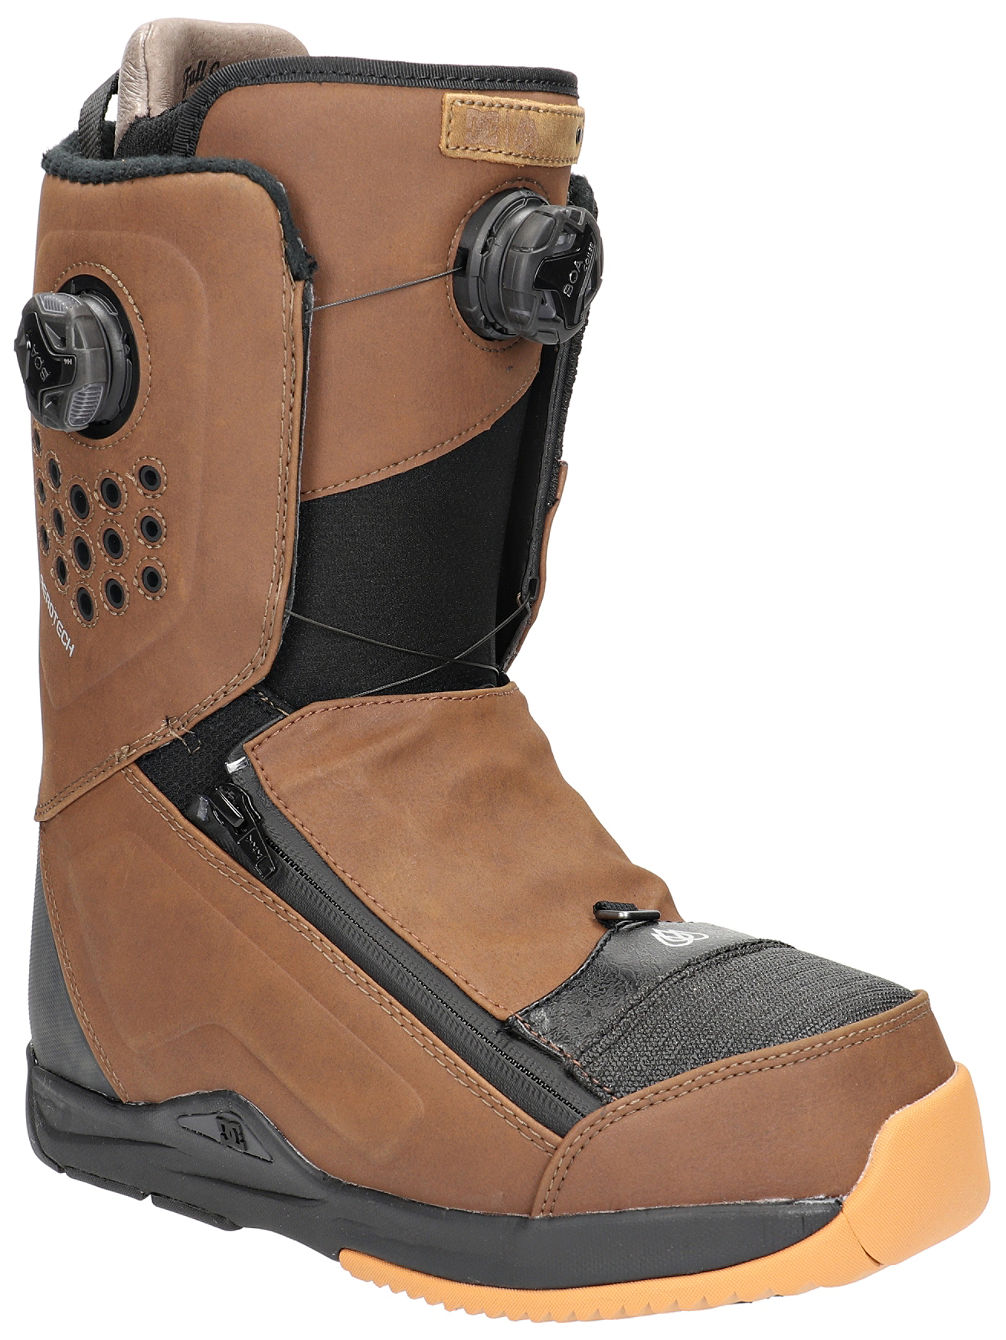 Travis Rice 2021 Snowboardboots